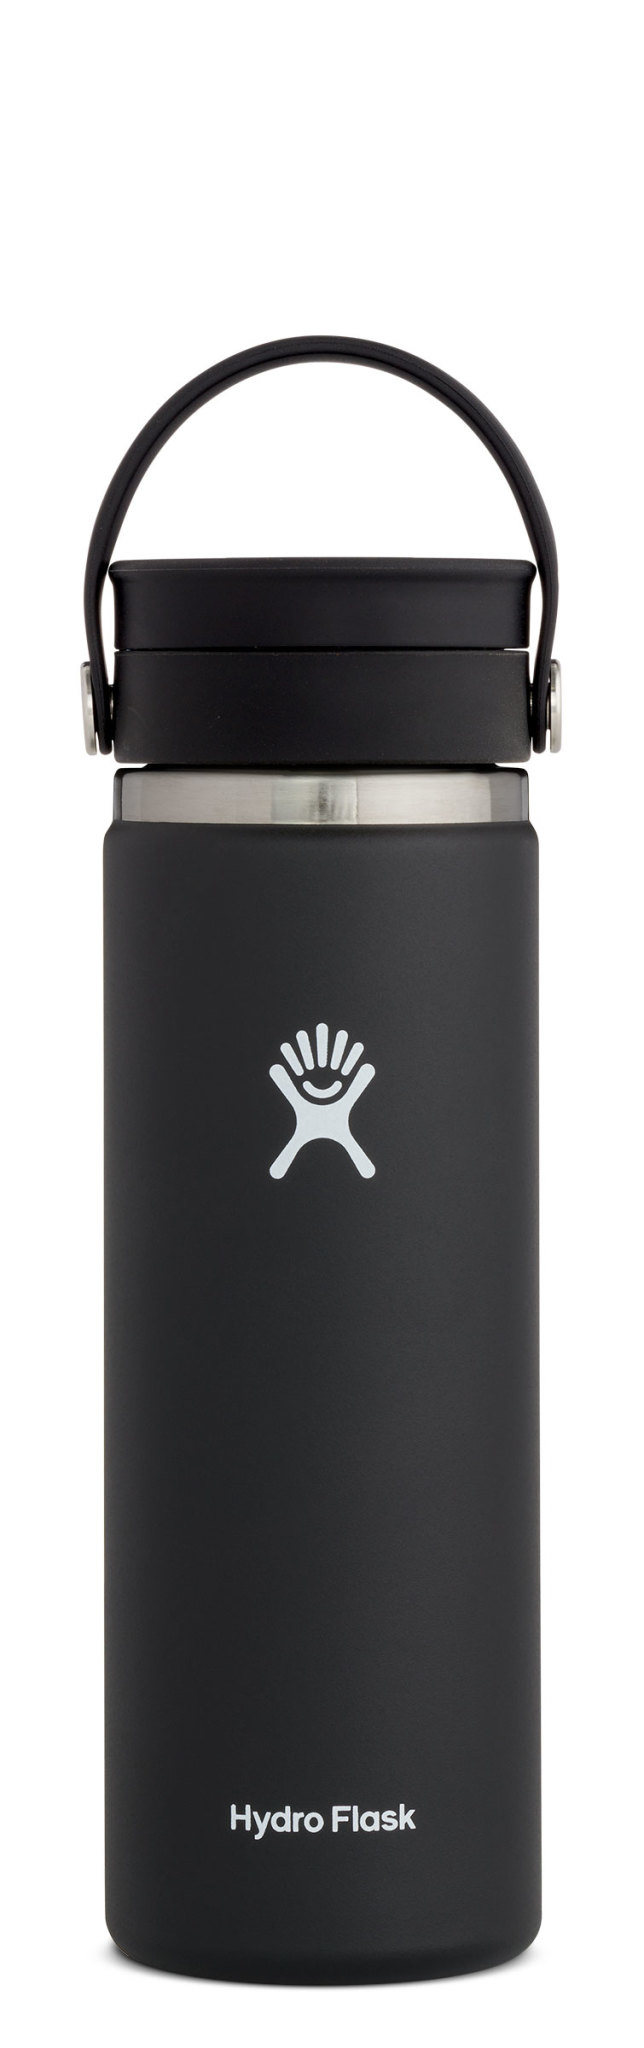 Hydro Flask 20oz Wide Mouth with Flex Sip Lid-2